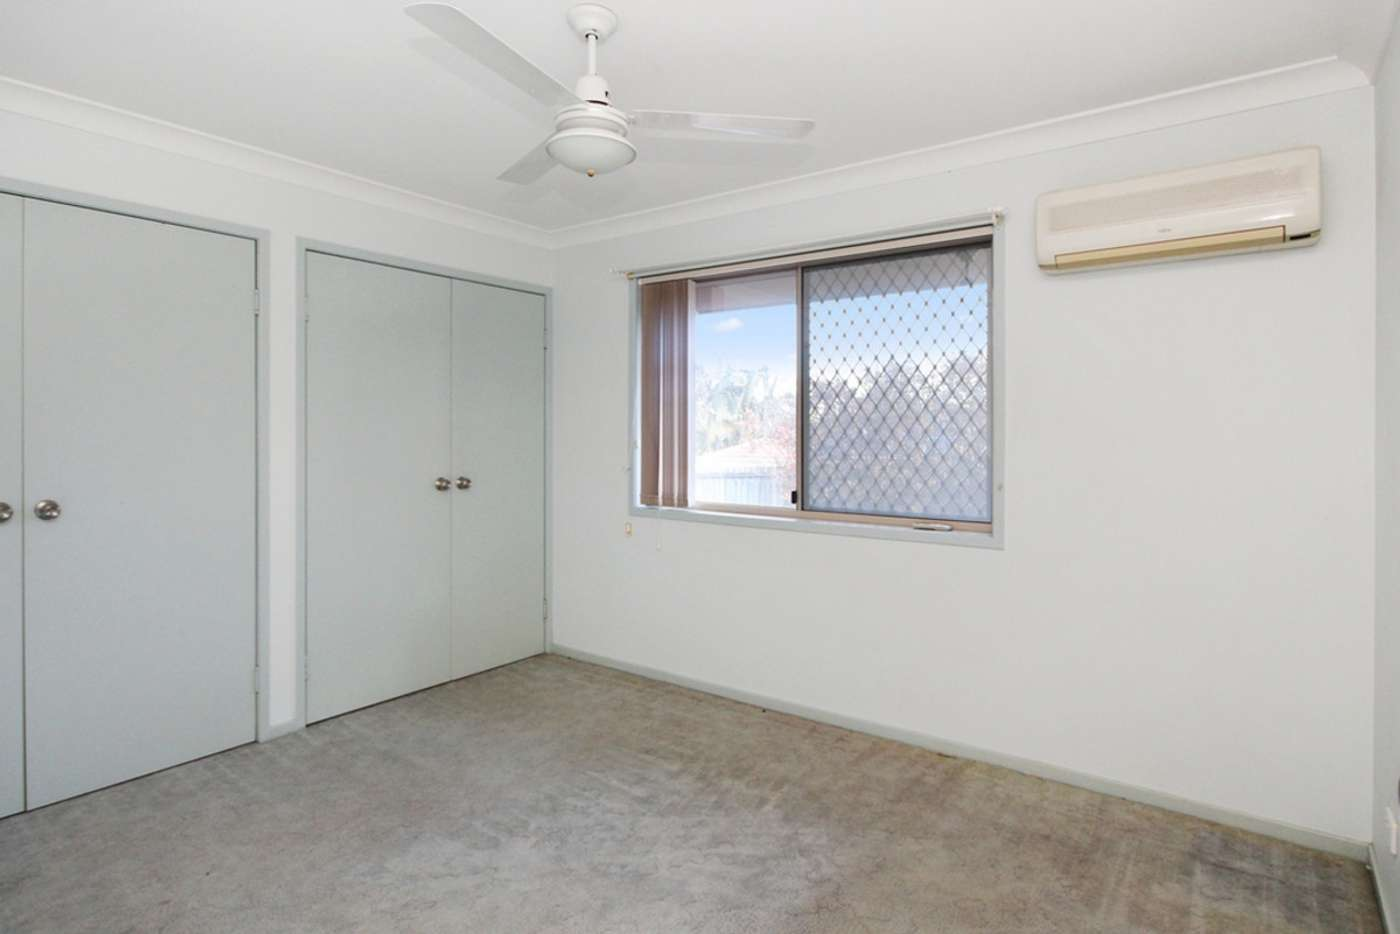 Seventh view of Homely house listing, 26 Pearse Drive, Brassall QLD 4305